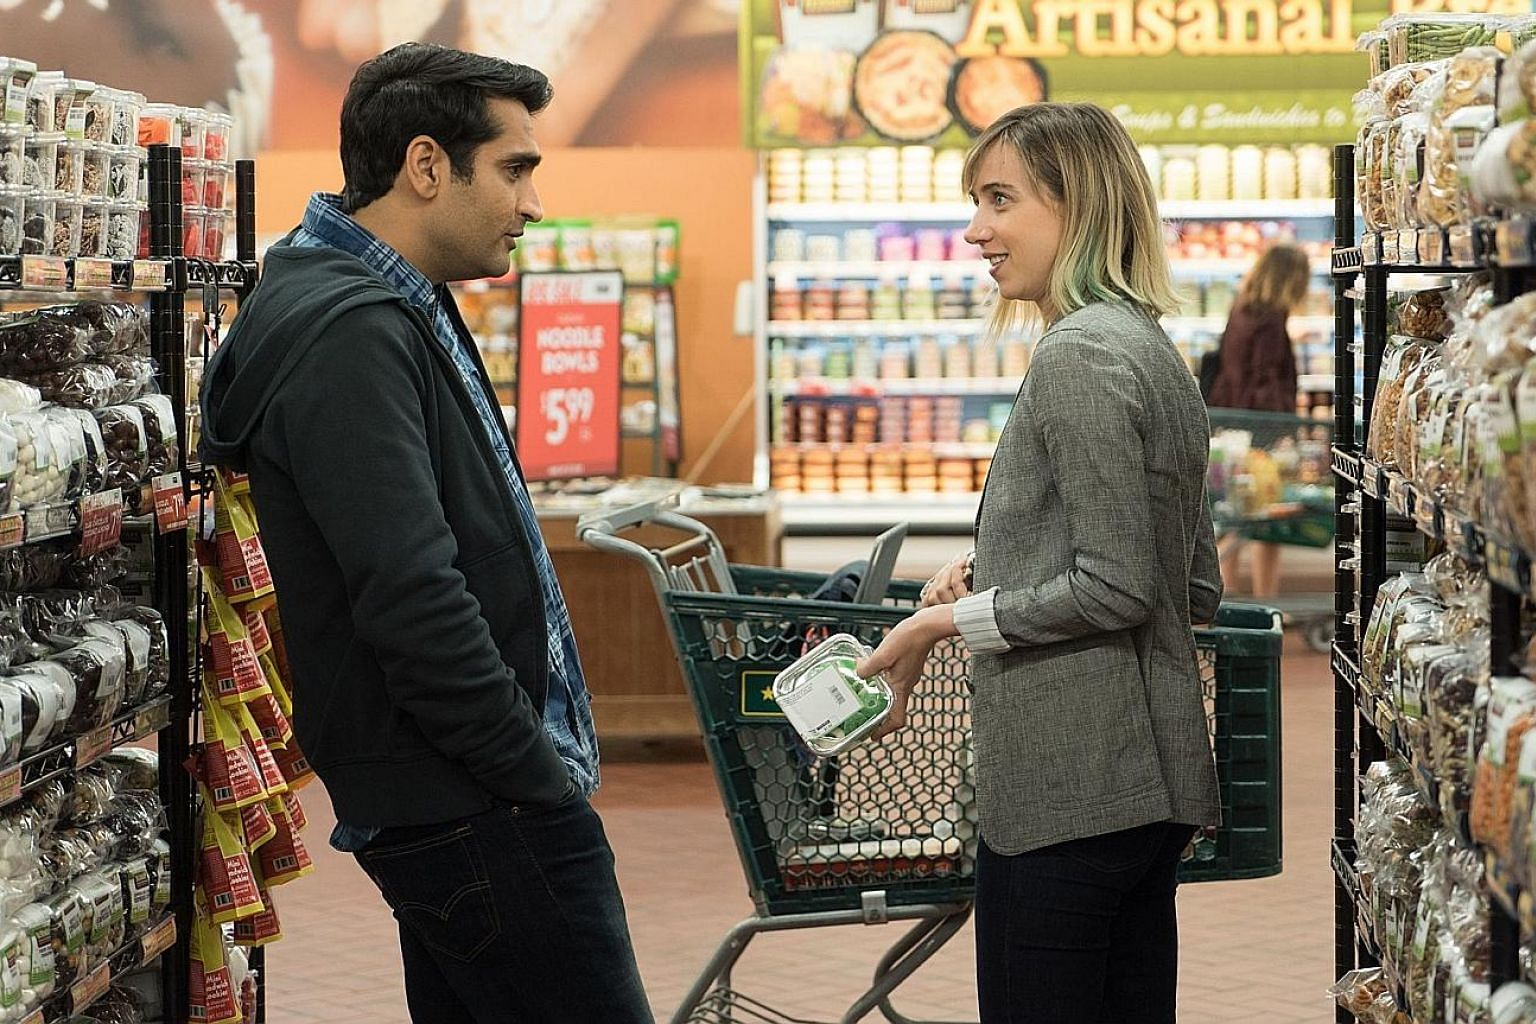 Kumail Nanjiani and Zoe Kazan in The Big Sick. Nanjiani, a Pakistani American, plays himself in the movie, which is based on his life.